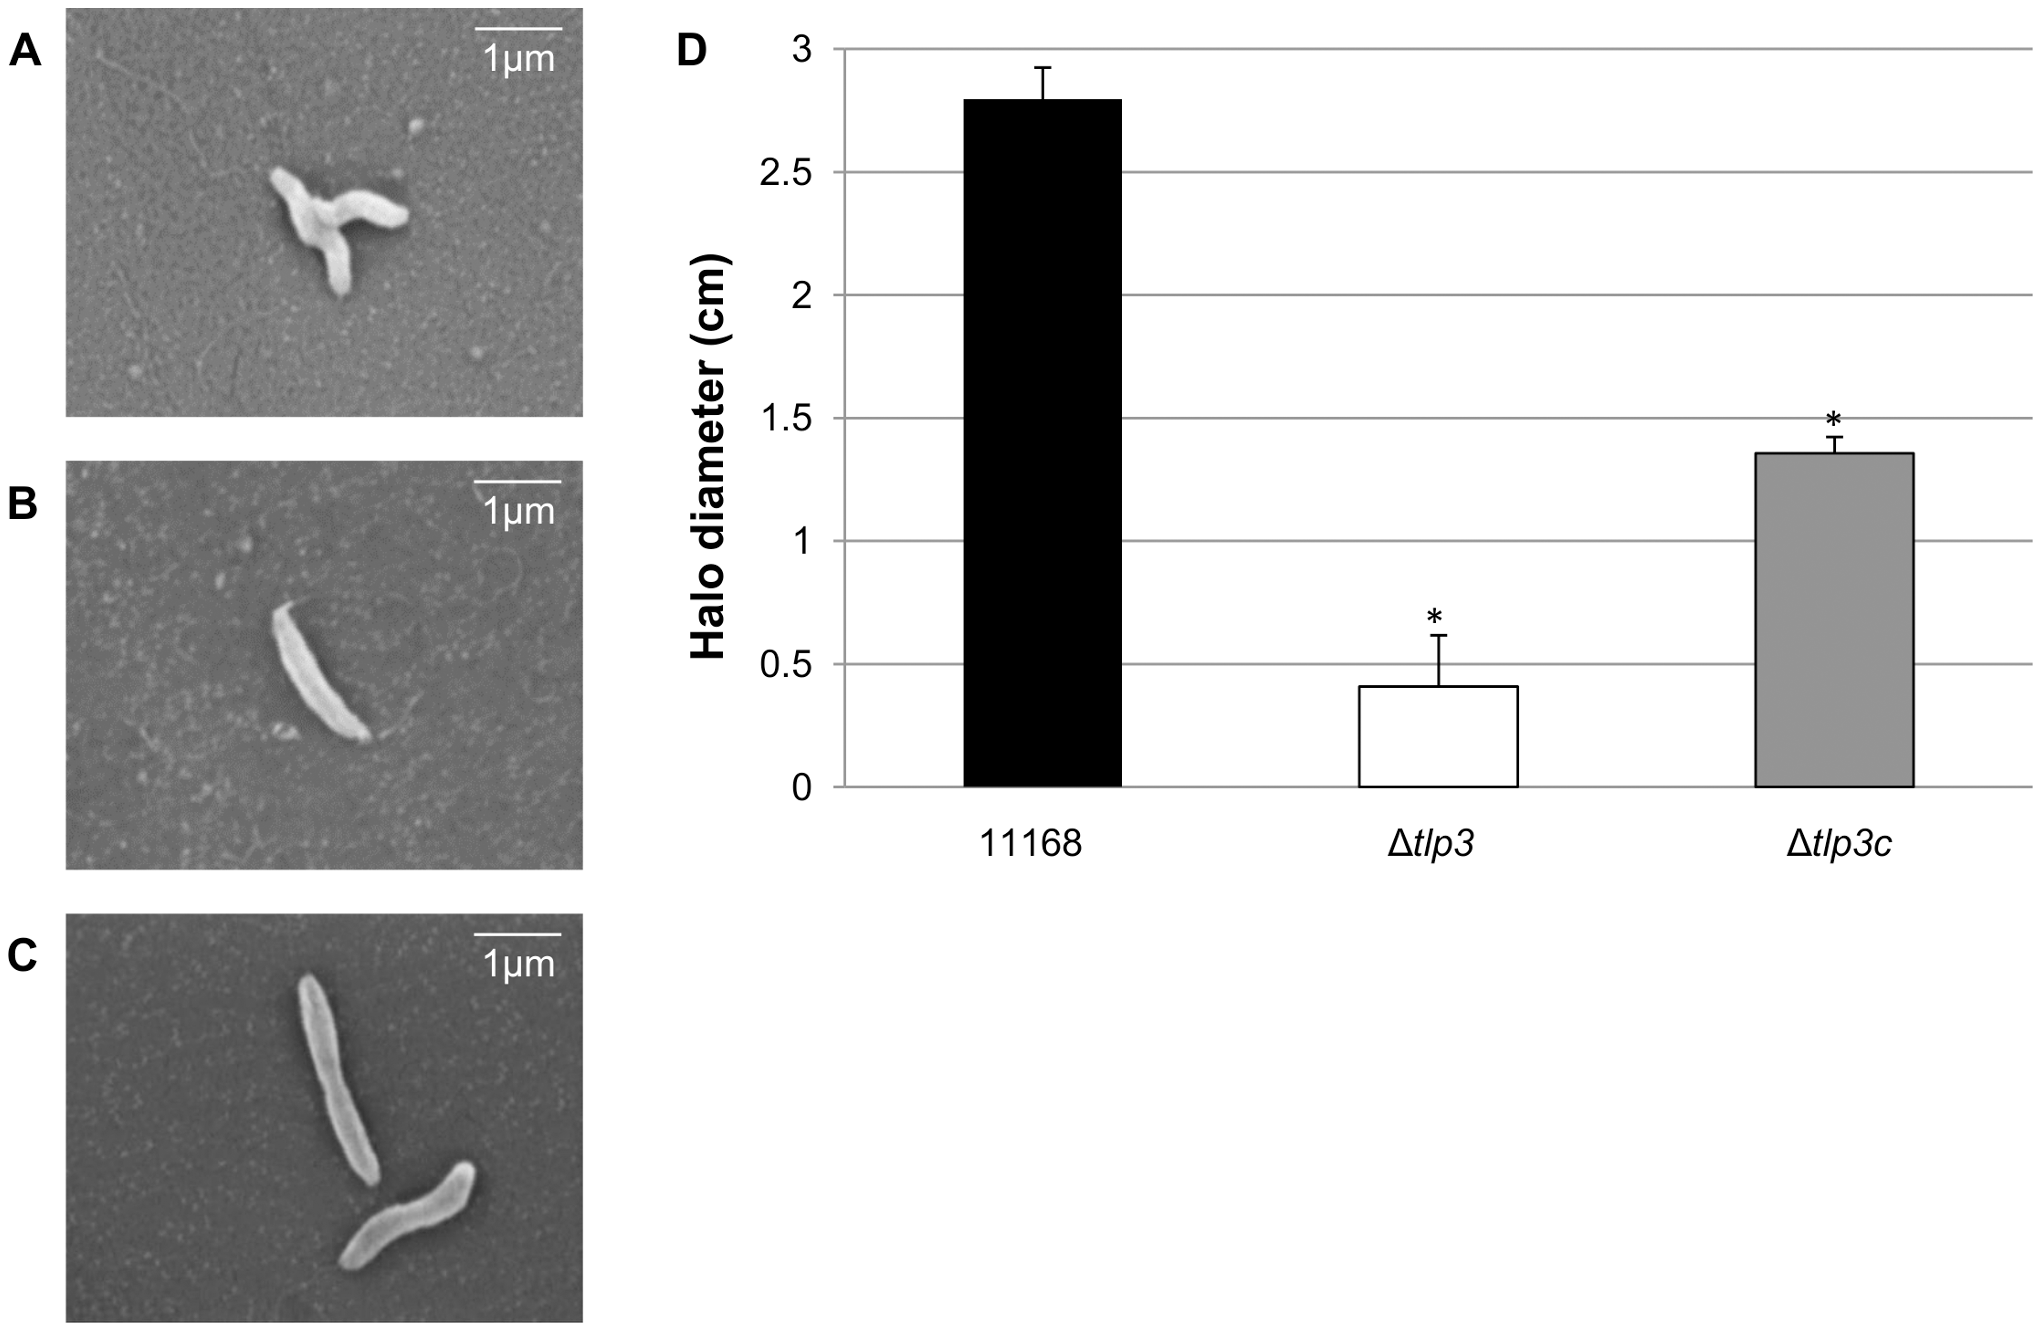 A <i>tlp3</i> mutant has altered morphology and defect in motility.